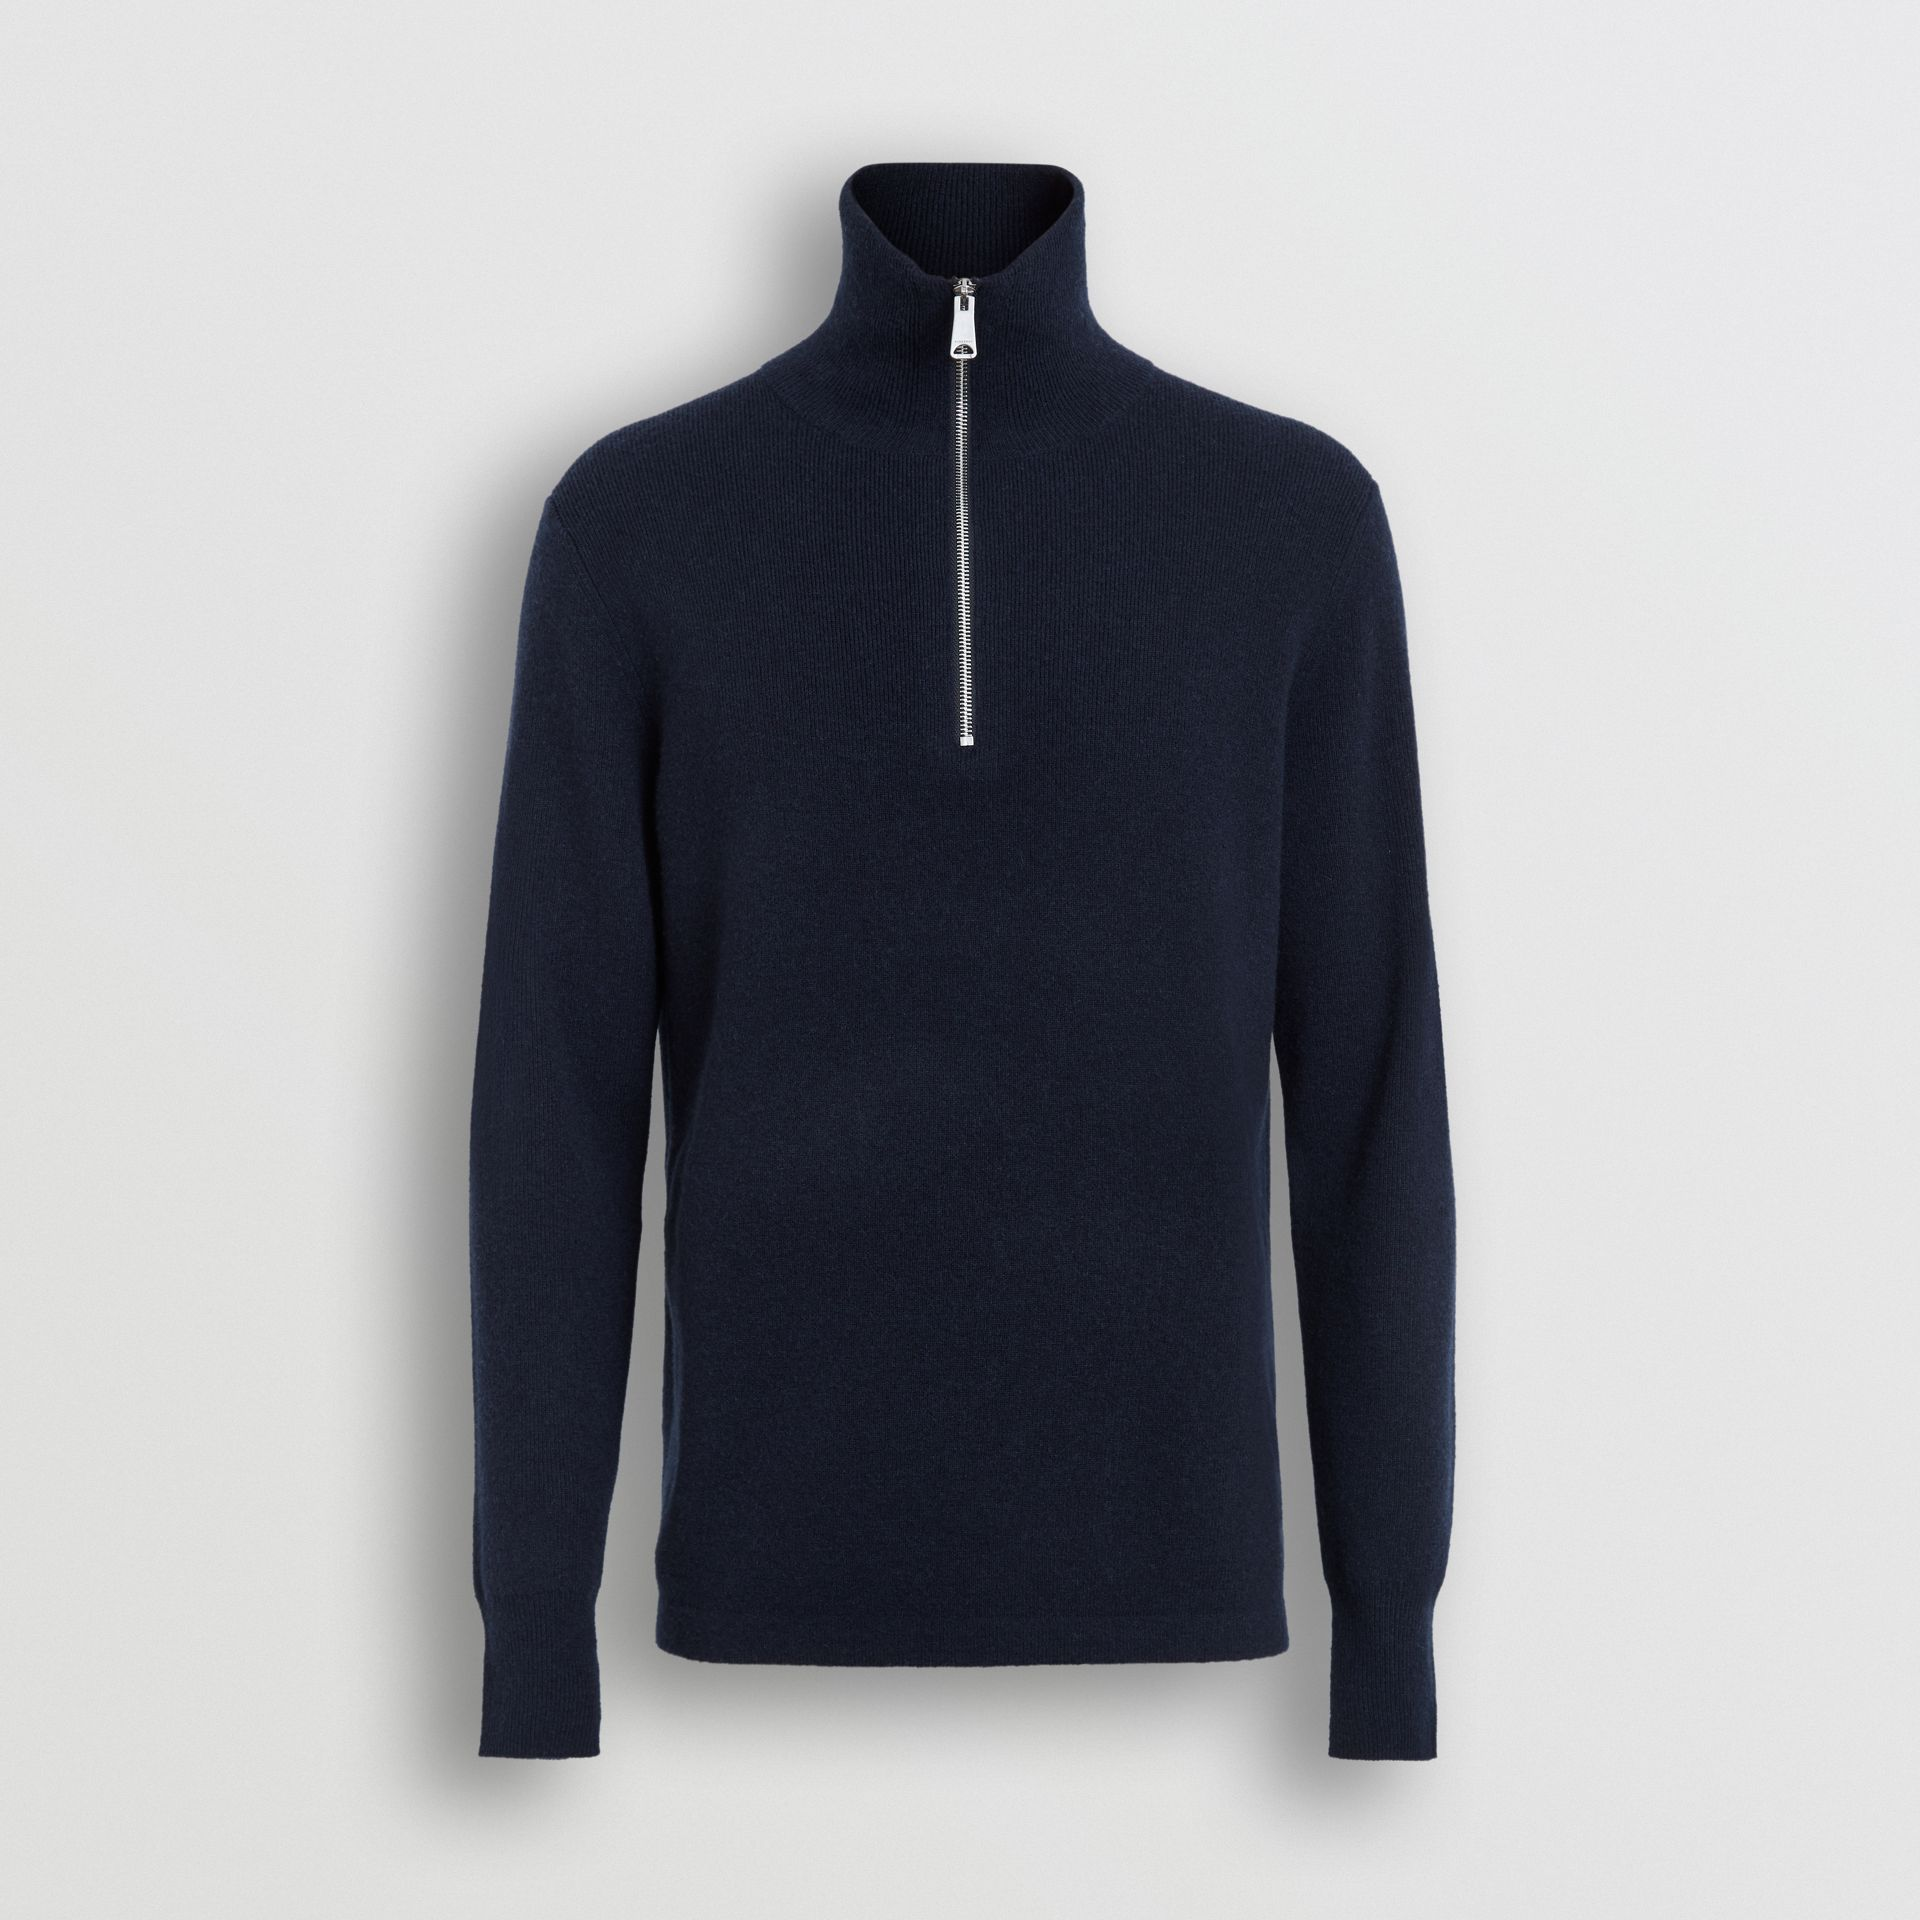 Rib Knit Cashmere Half-zip Sweater in Navy - Men | Burberry Singapore - gallery image 3